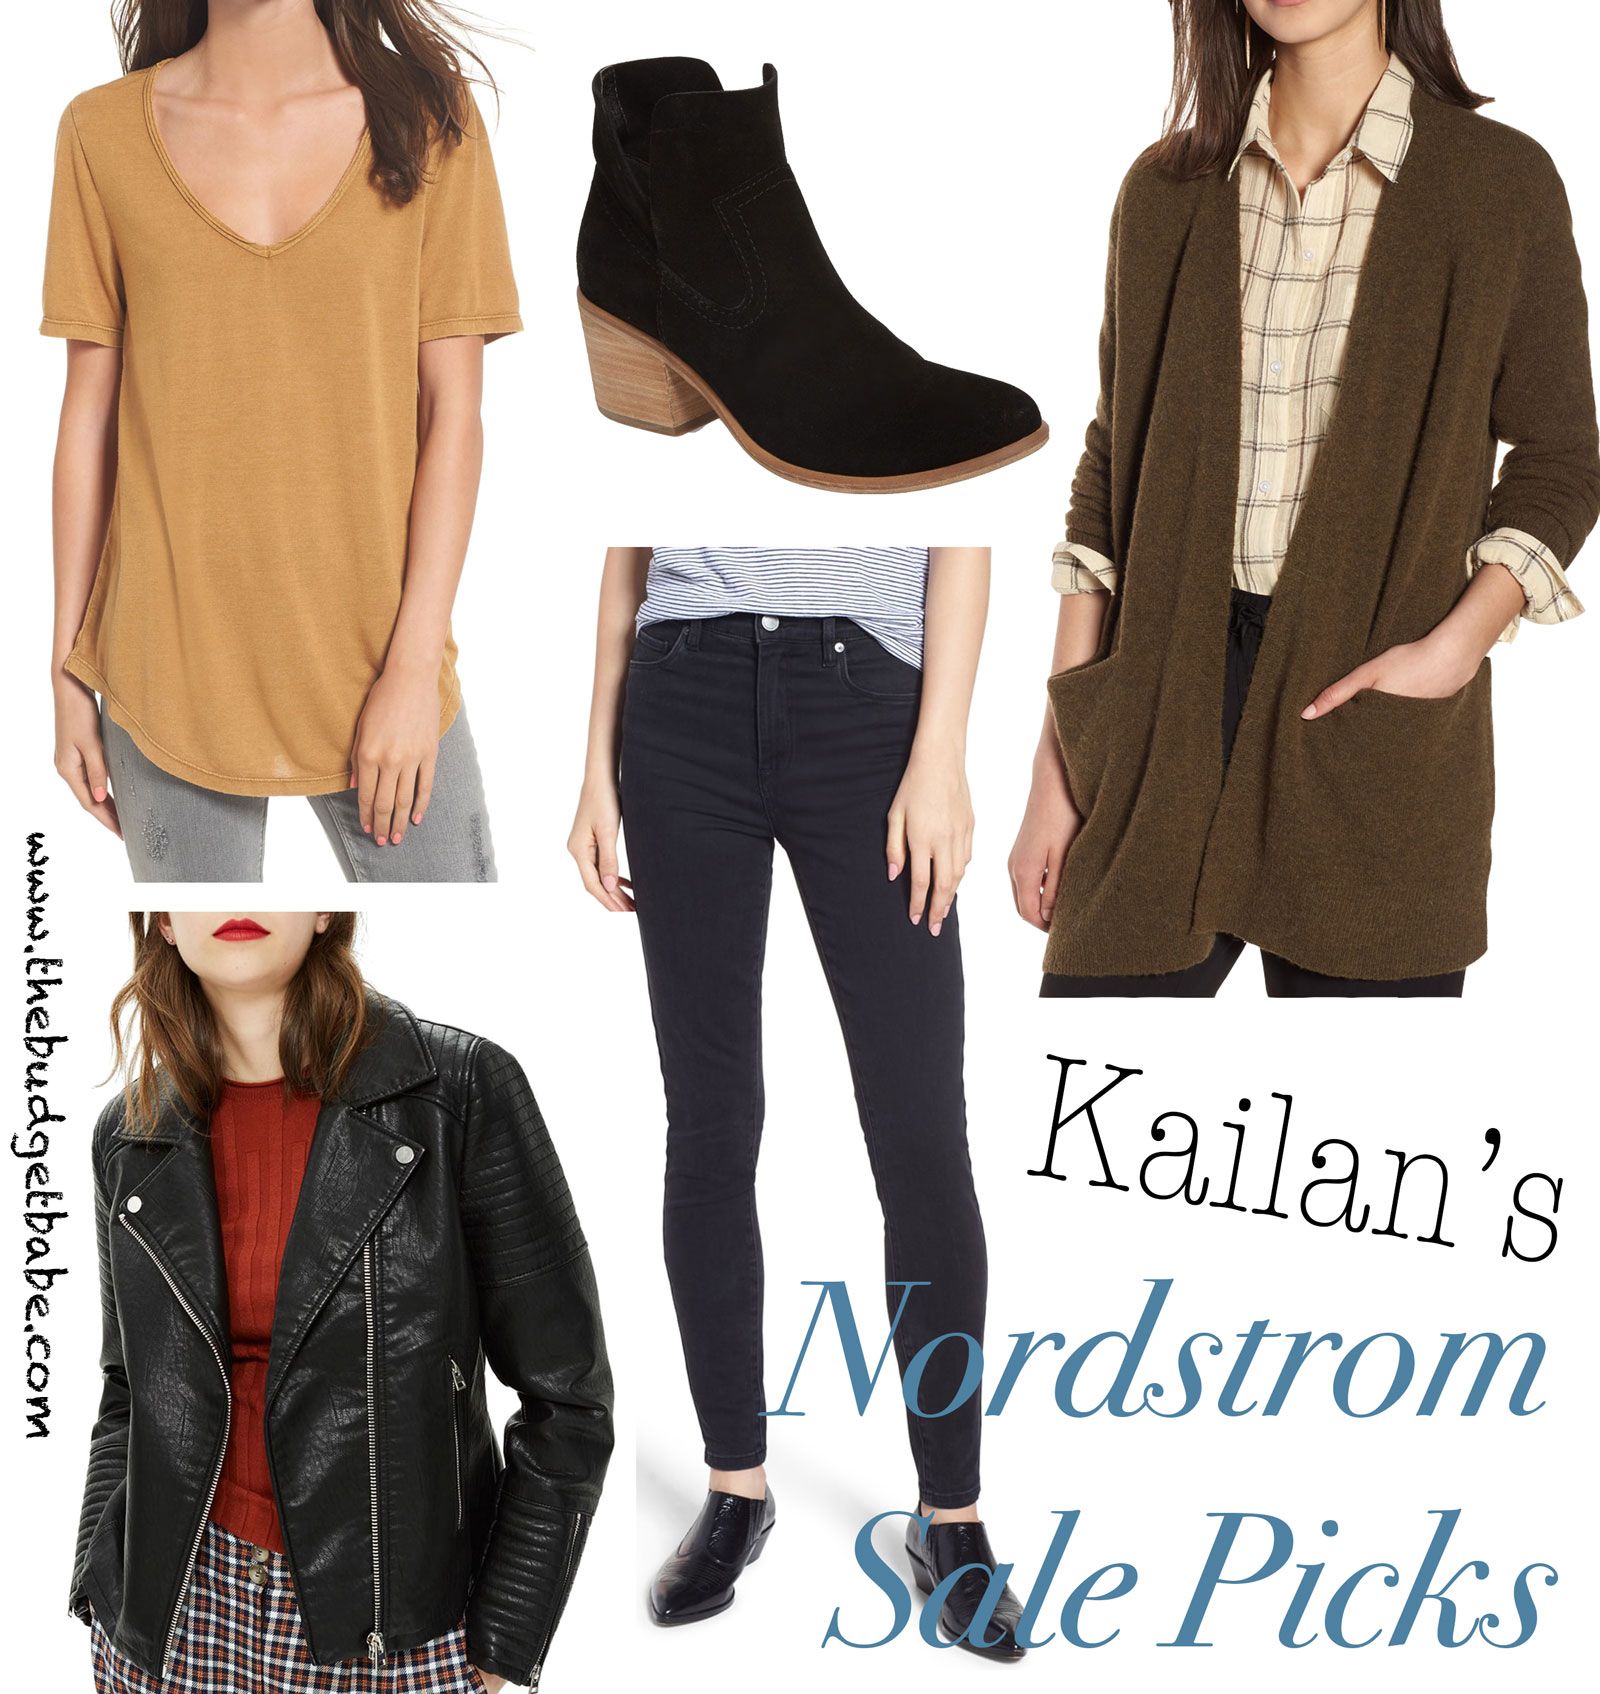 Kailan's 2018 Nordstrom Sale Picks